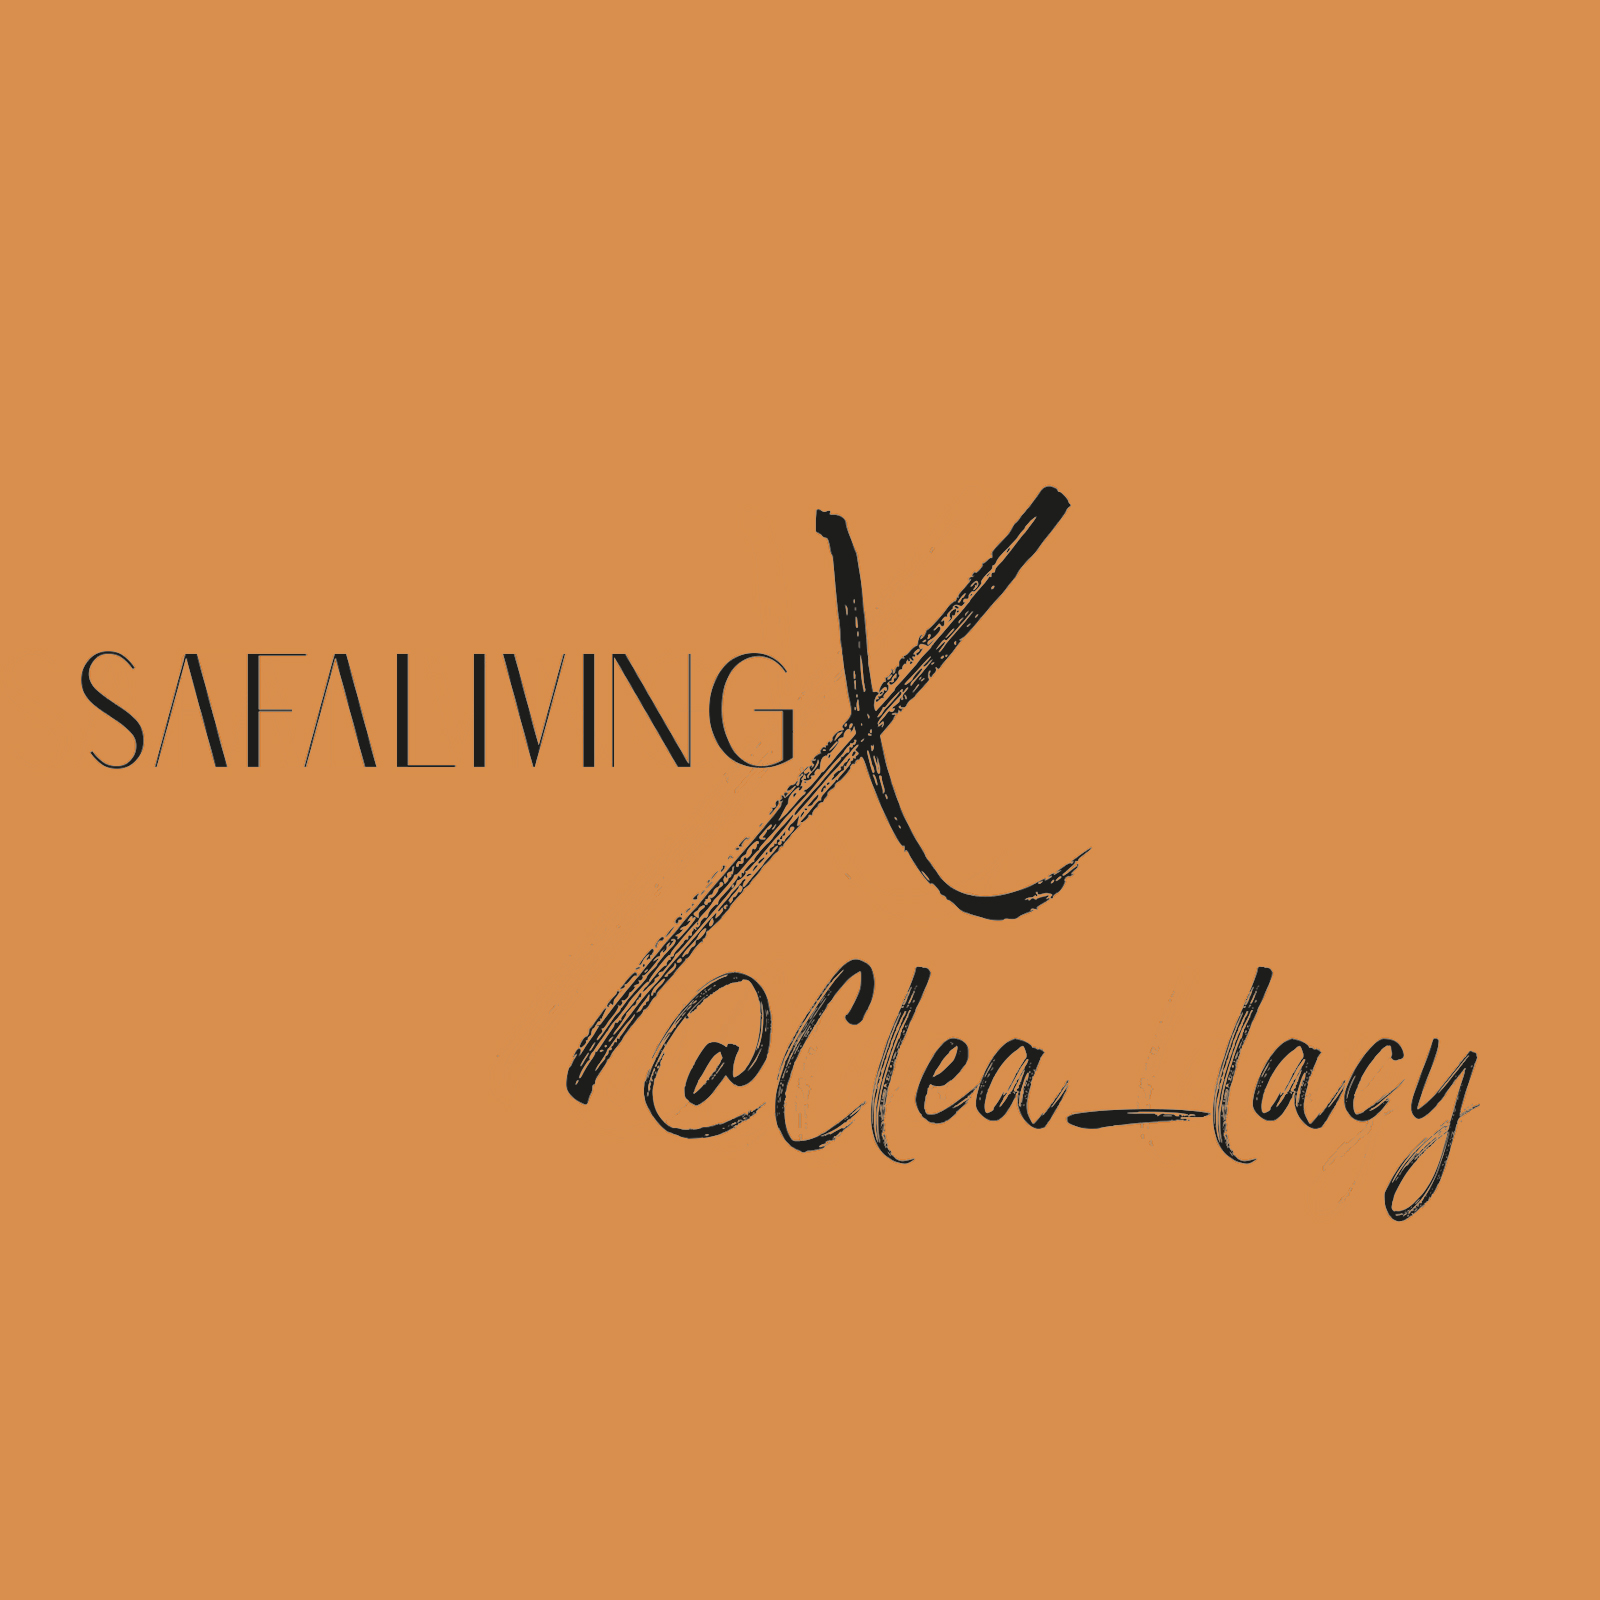 safaliving x clea lacy